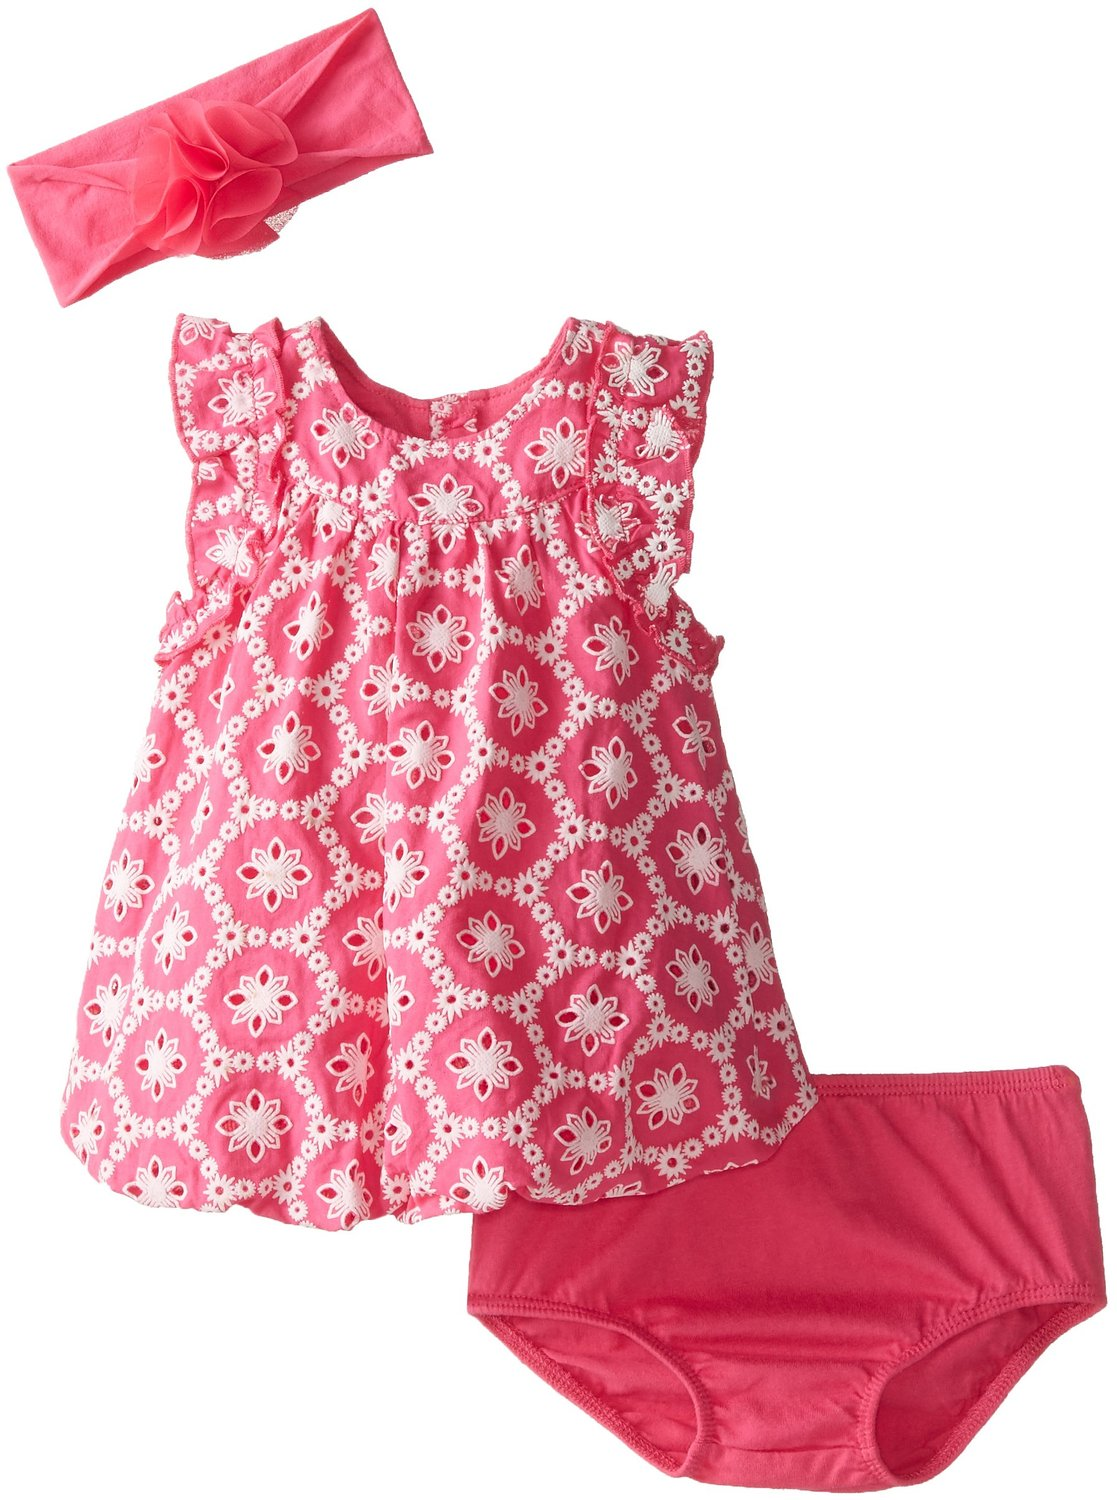 52e6c0c9d19a7 Fun Ways to Find Cheap Baby Clothes